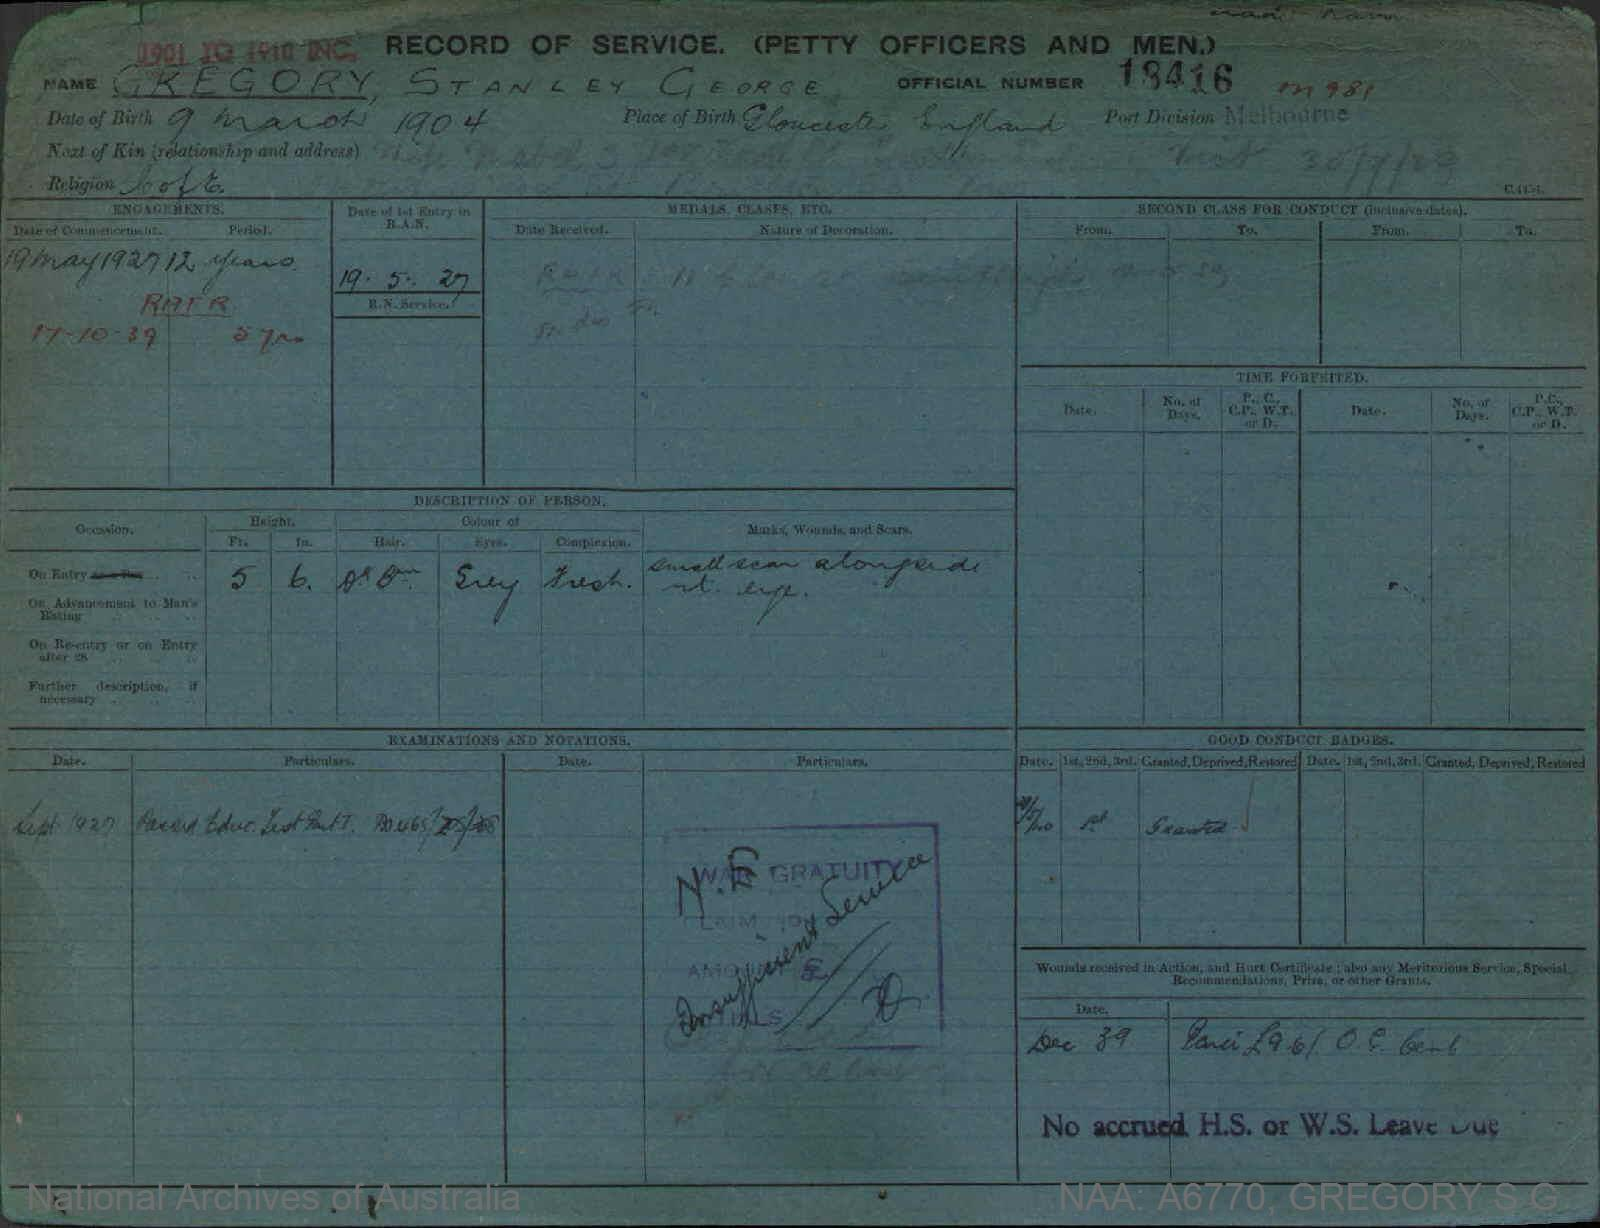 GREGORY STANLEY GEORGE : Service Number - 18416 : Date of birth - 09 Mar 1904 : Place of birth - GLOUCESTER ENGLAND : Place of enlistment - MELBOURNE : Next of Kin - MABEL